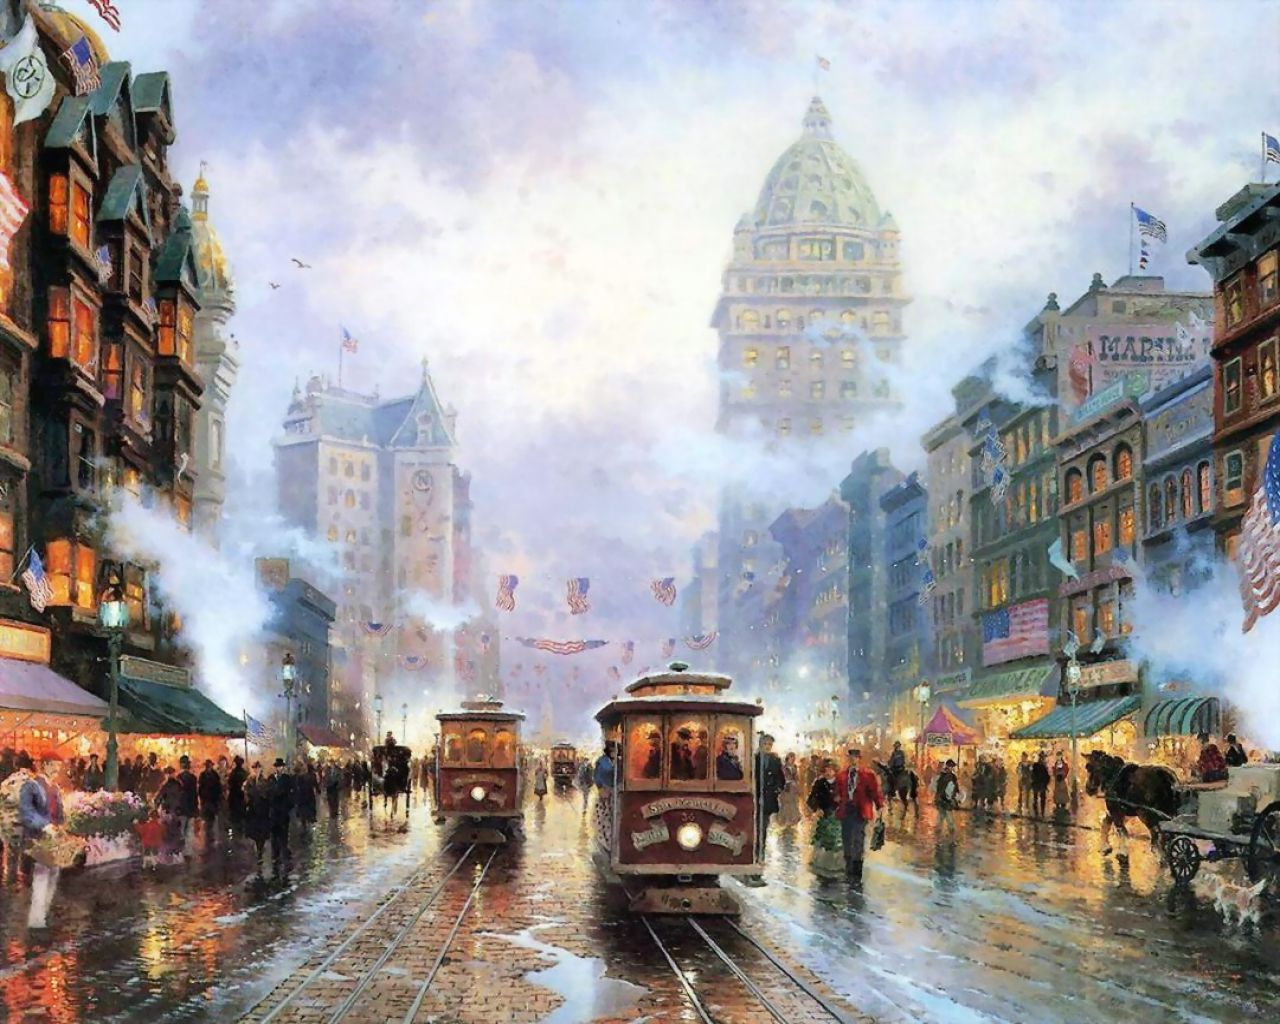 Thomas Kinkade - a city with American flags